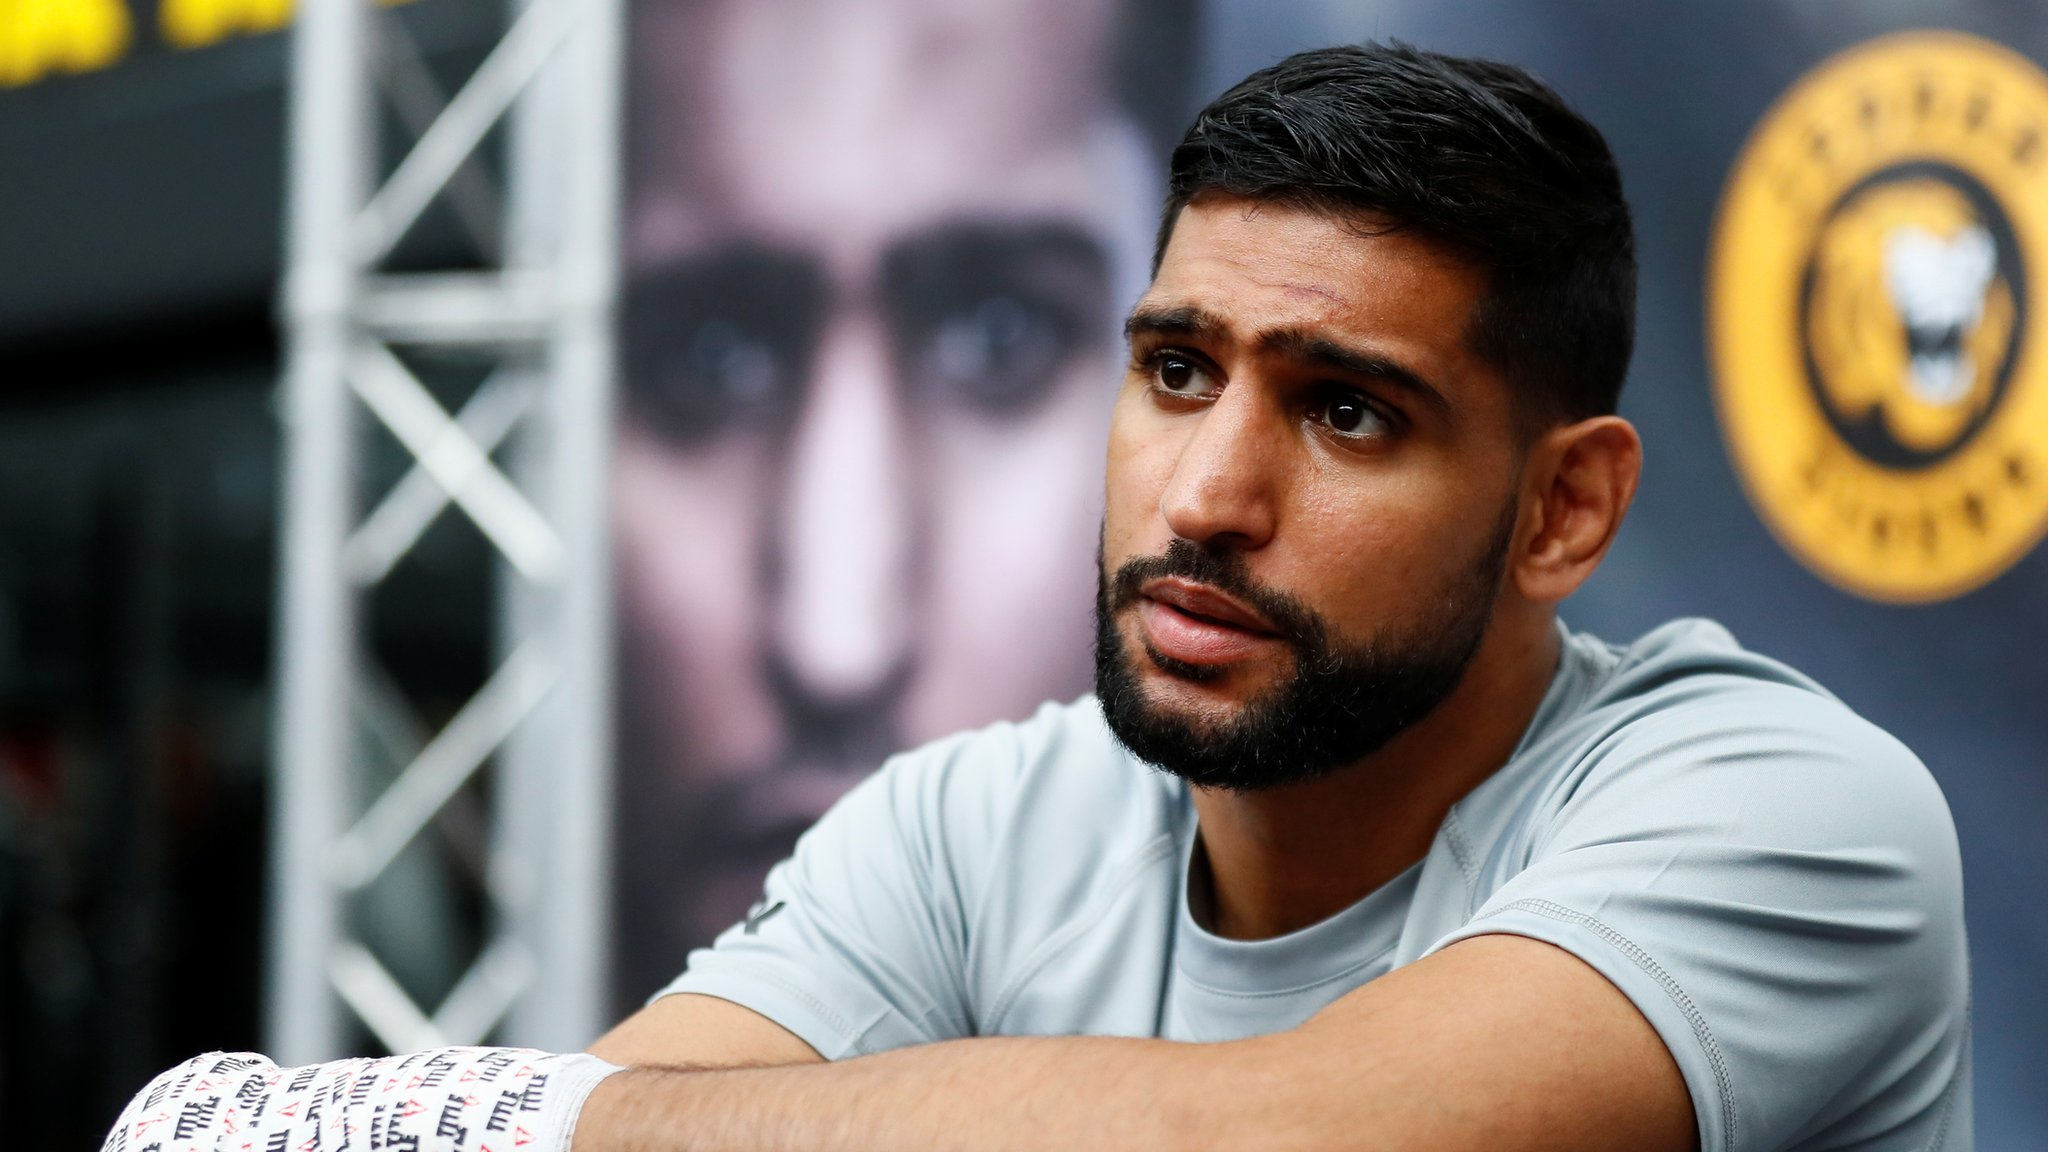 Amir Khan says he may retire if he does not feel good when facing Neeraj Goyat